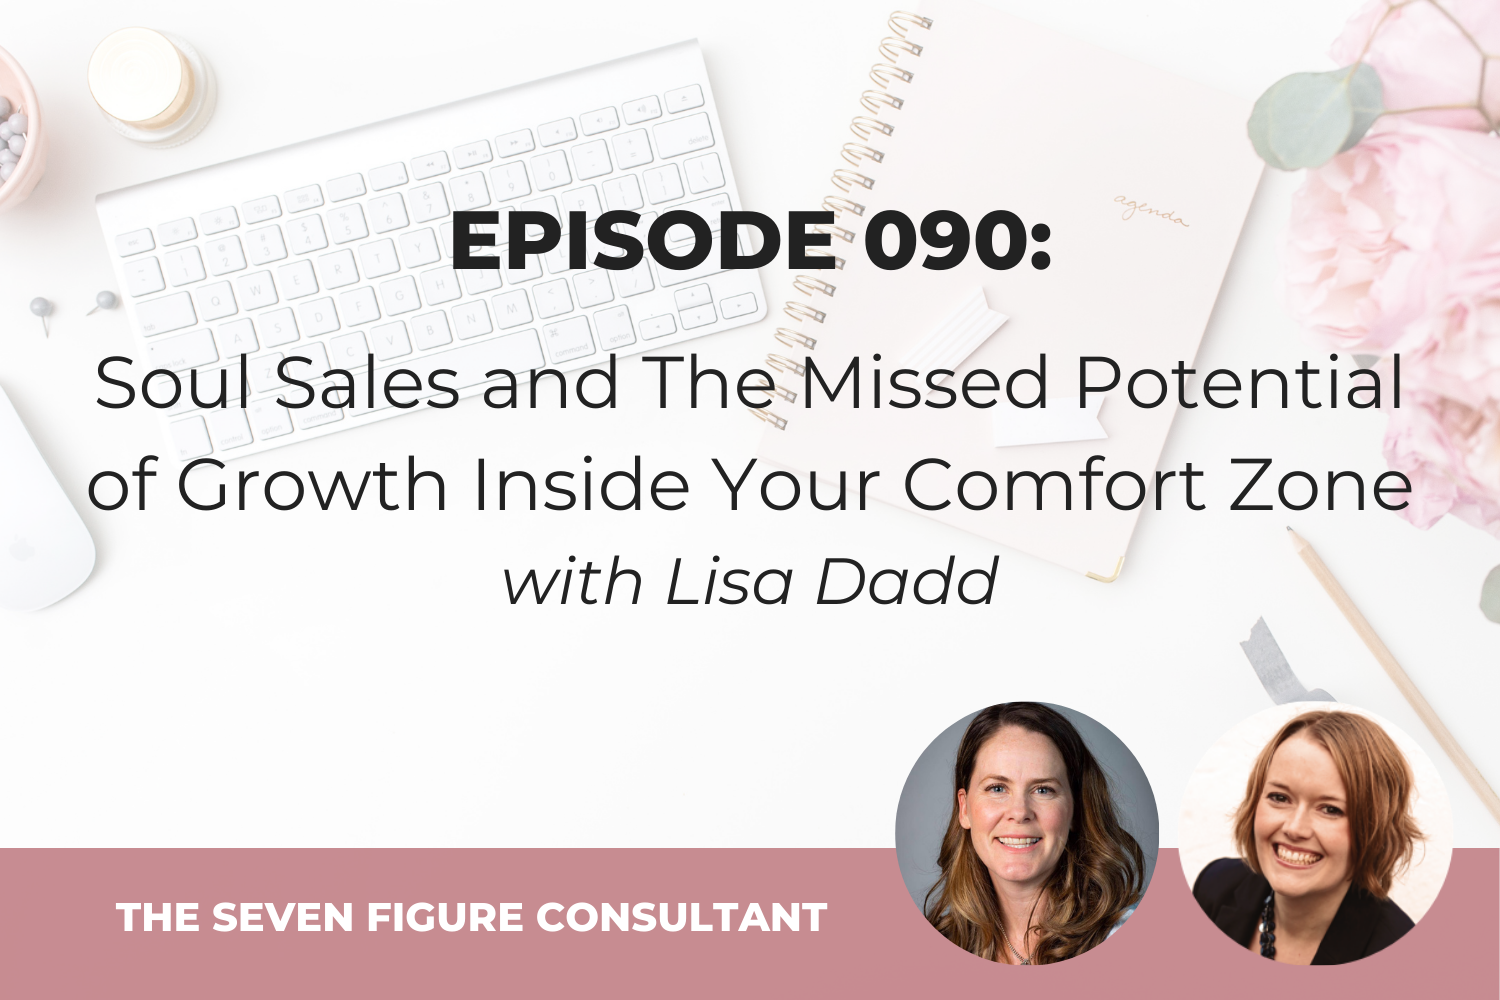 You are currently viewing Episode 090: Soul Sales and The Missed Potential of Growth Inside Your Comfort Zone with Lisa Dadd